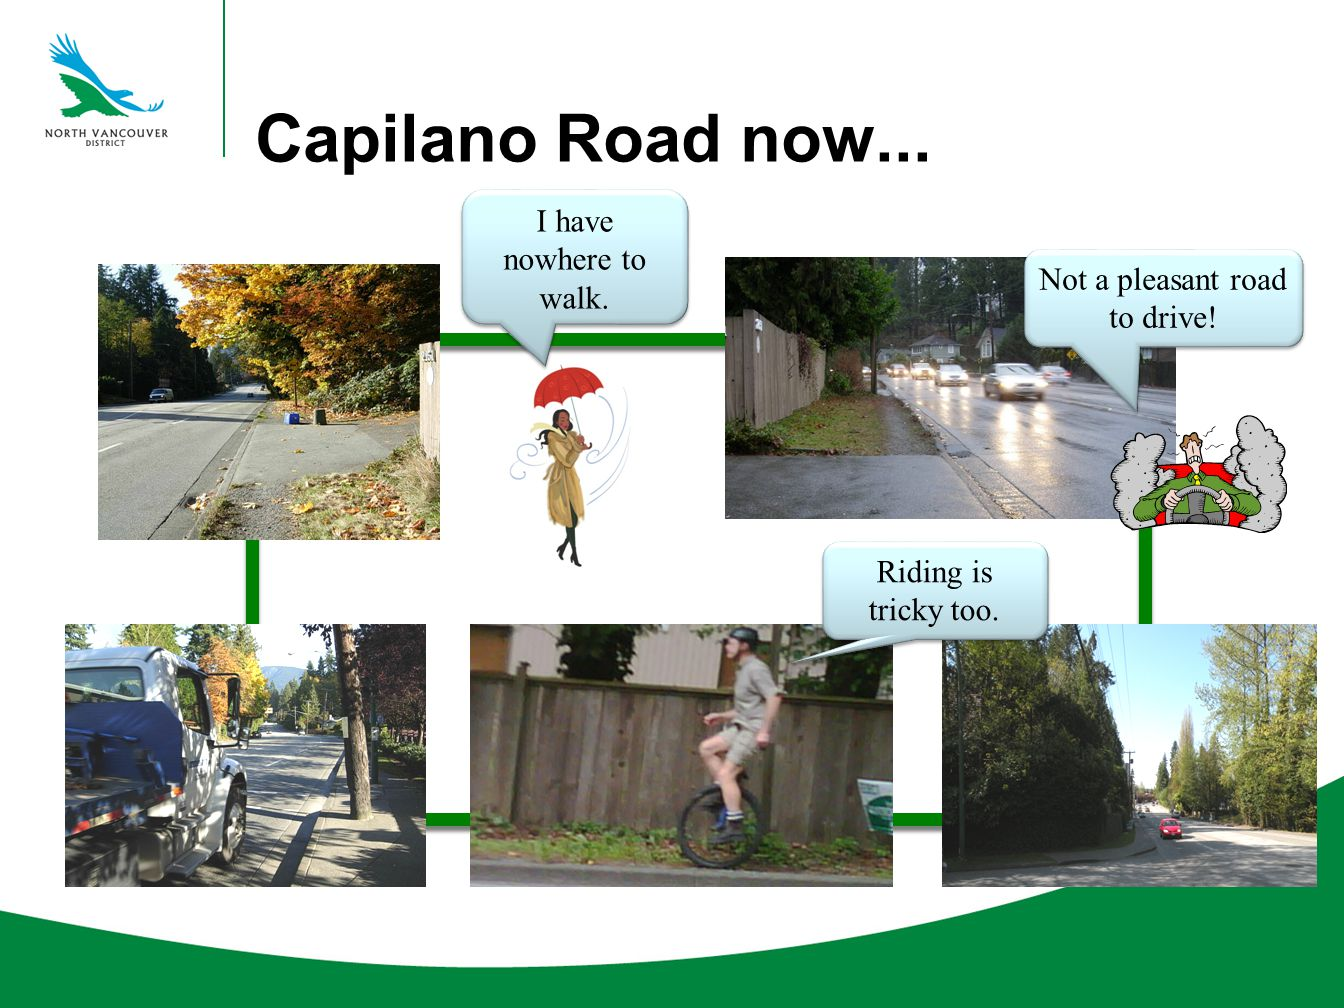 Capilano Road now... I have nowhere to walk. Riding is tricky too. Not a pleasant road to drive!